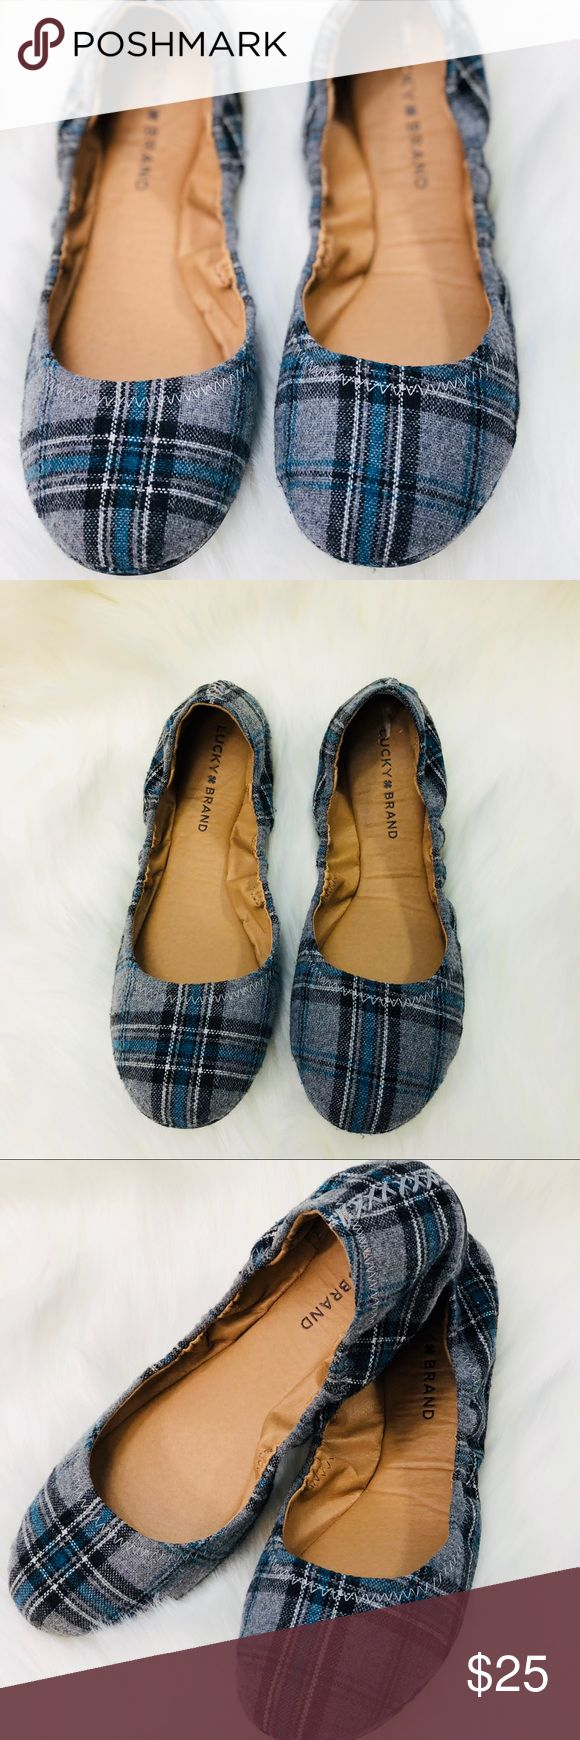 Lucky Brand Flats size 8 1/2 blue and gray Lucky Brand Emmi flats. Size 8 1/2 flannel gray and black. Brand New. Theses shoes are so Versatile  B05 Lucky Brand Shoes Flats & Loafers